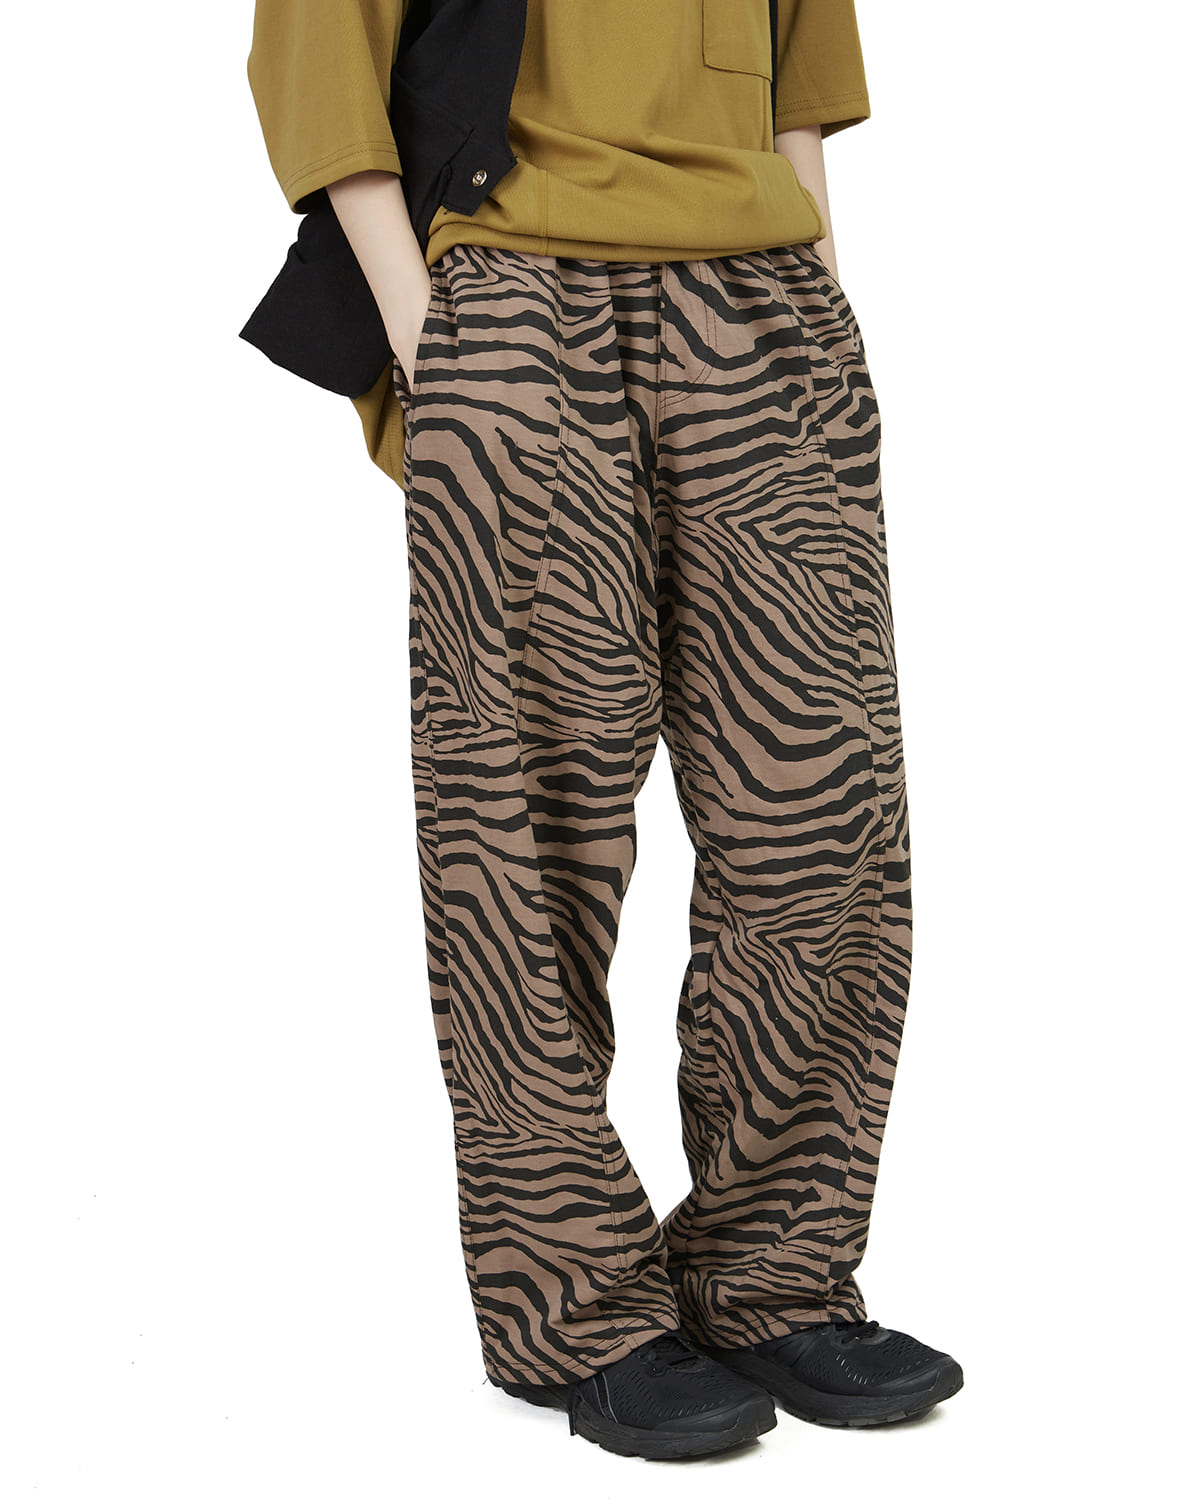 raucohouse-ZEBRA INCISION COTTON PANTS - RAUCO HOUSE♡韓國男裝褲子